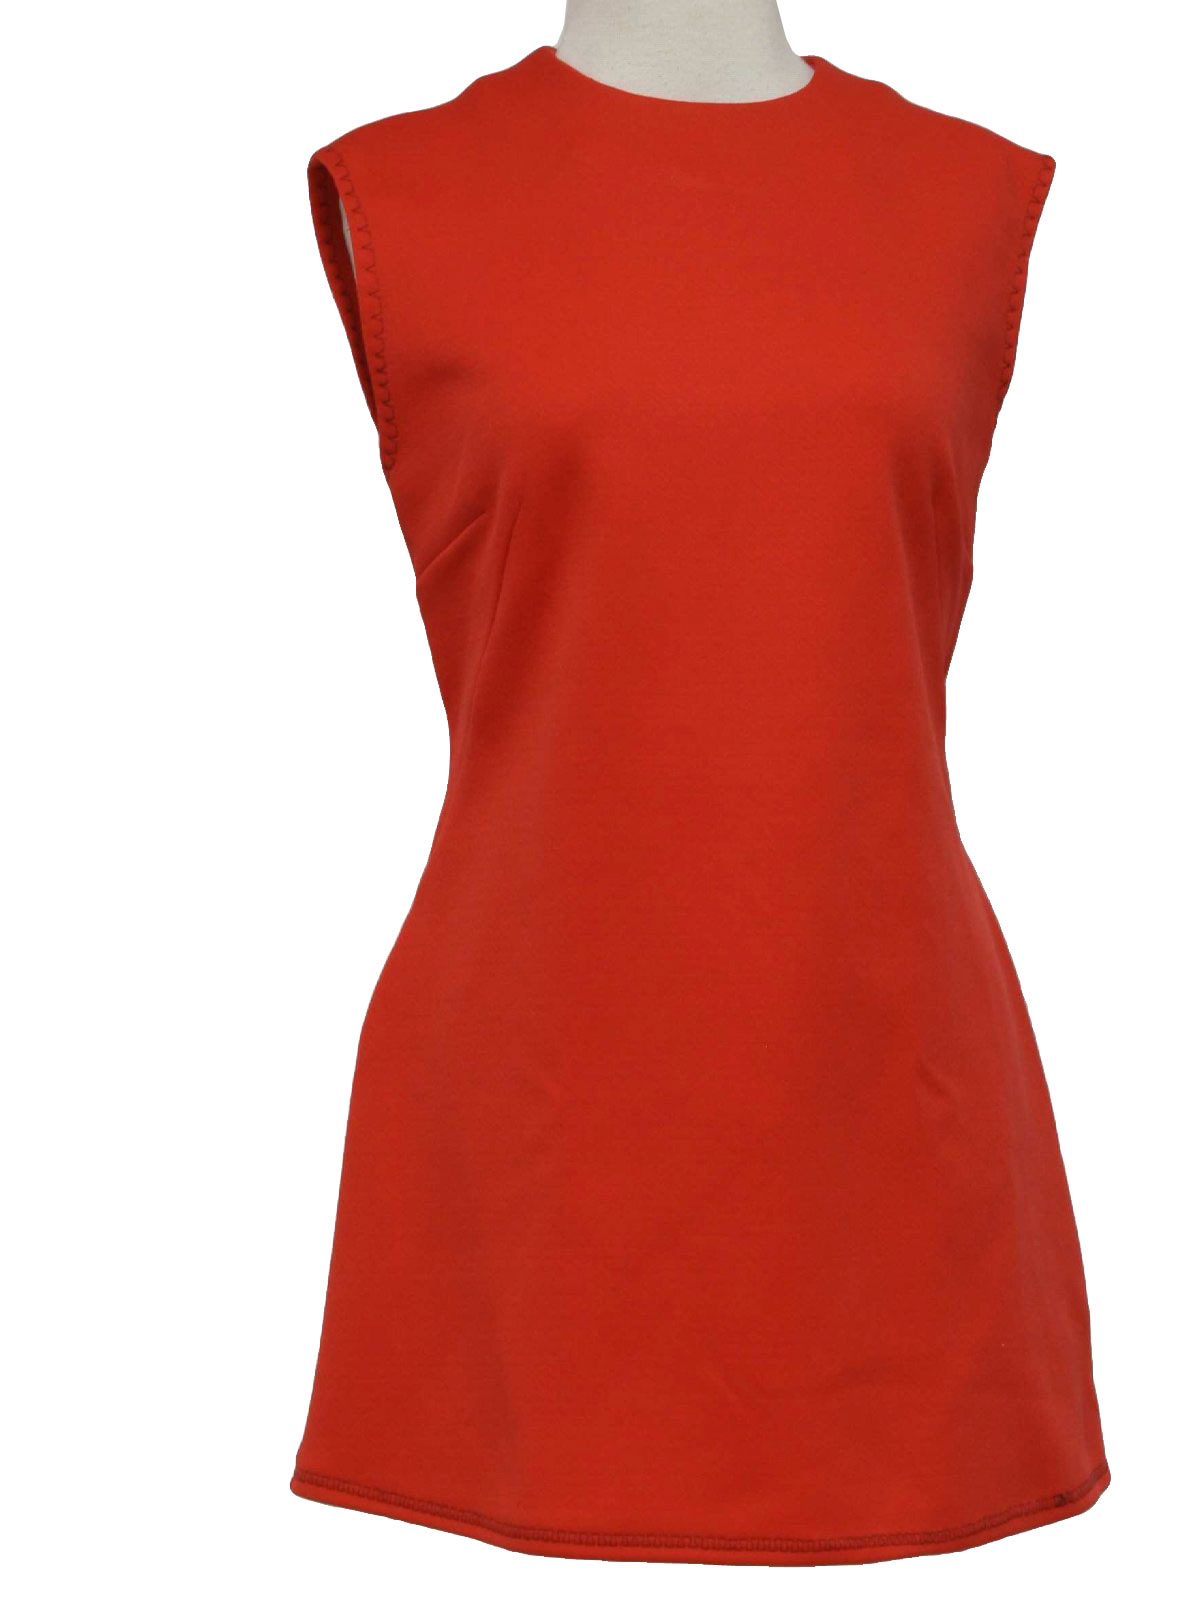 Red cocktail dress 2017